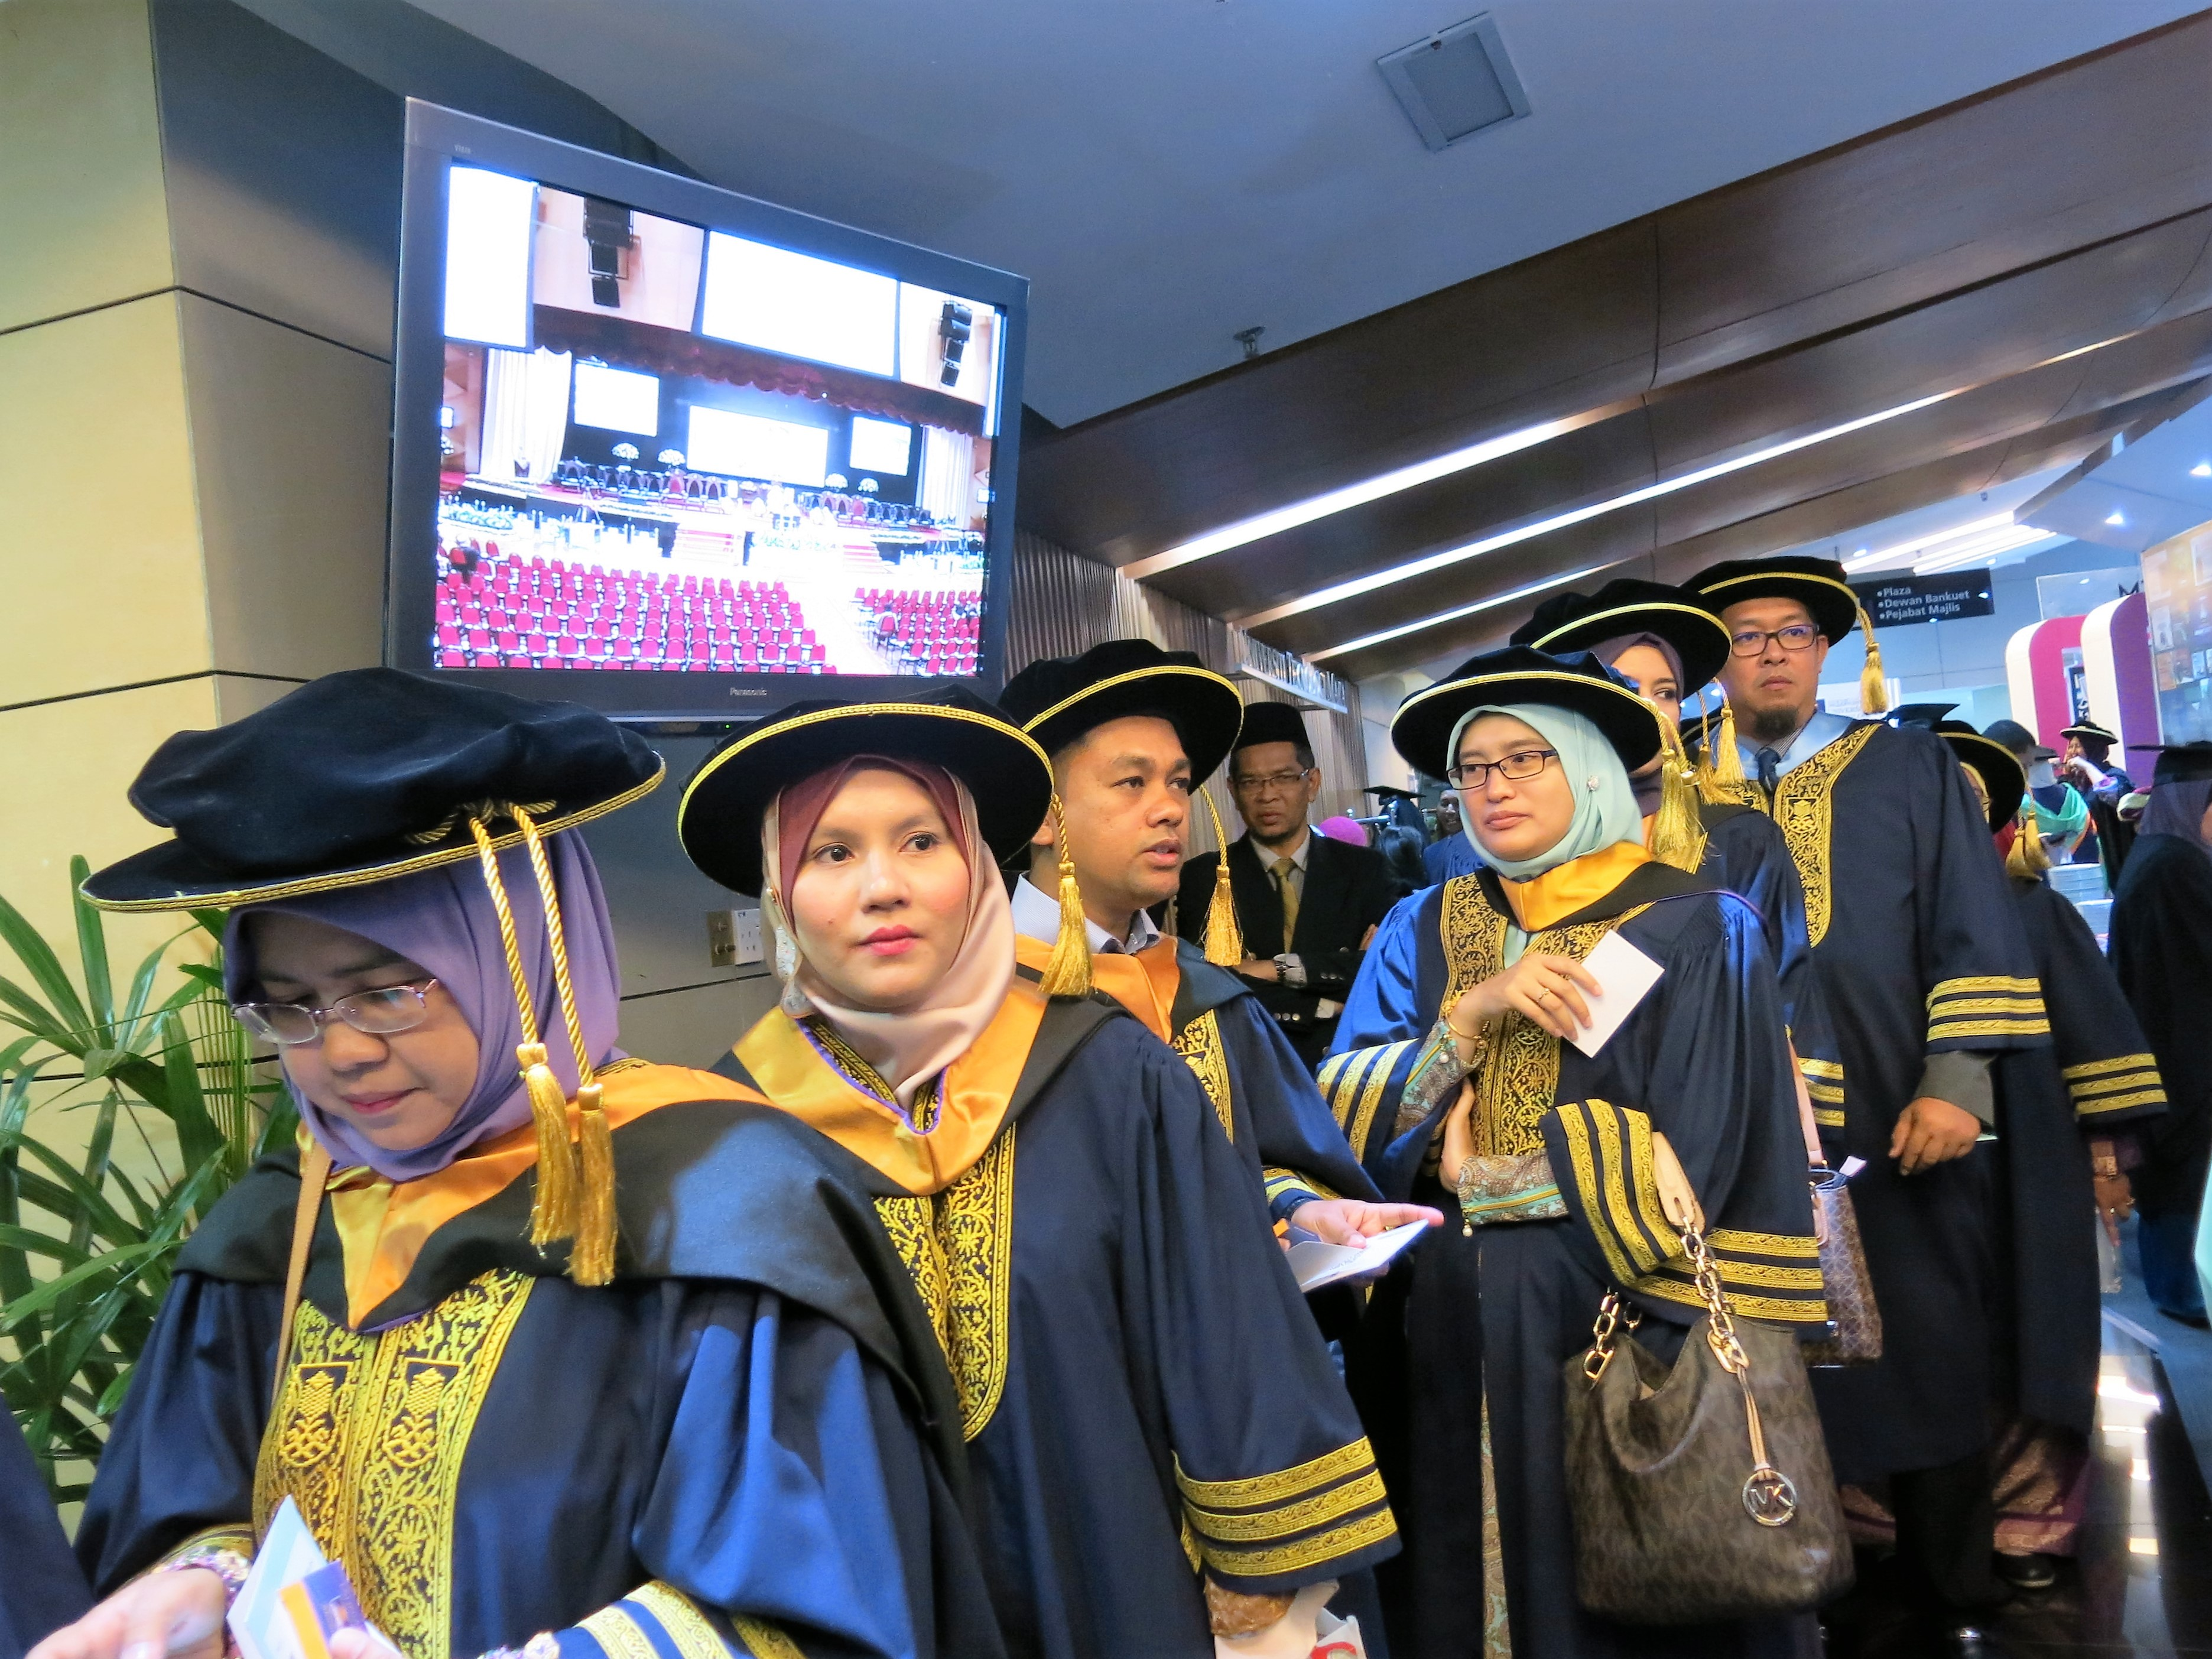 3. UiTM graduates in the queue before entering DATC to receive their scrolls from His Majesty Yang di-Pertuan Agong in Shah Alam.